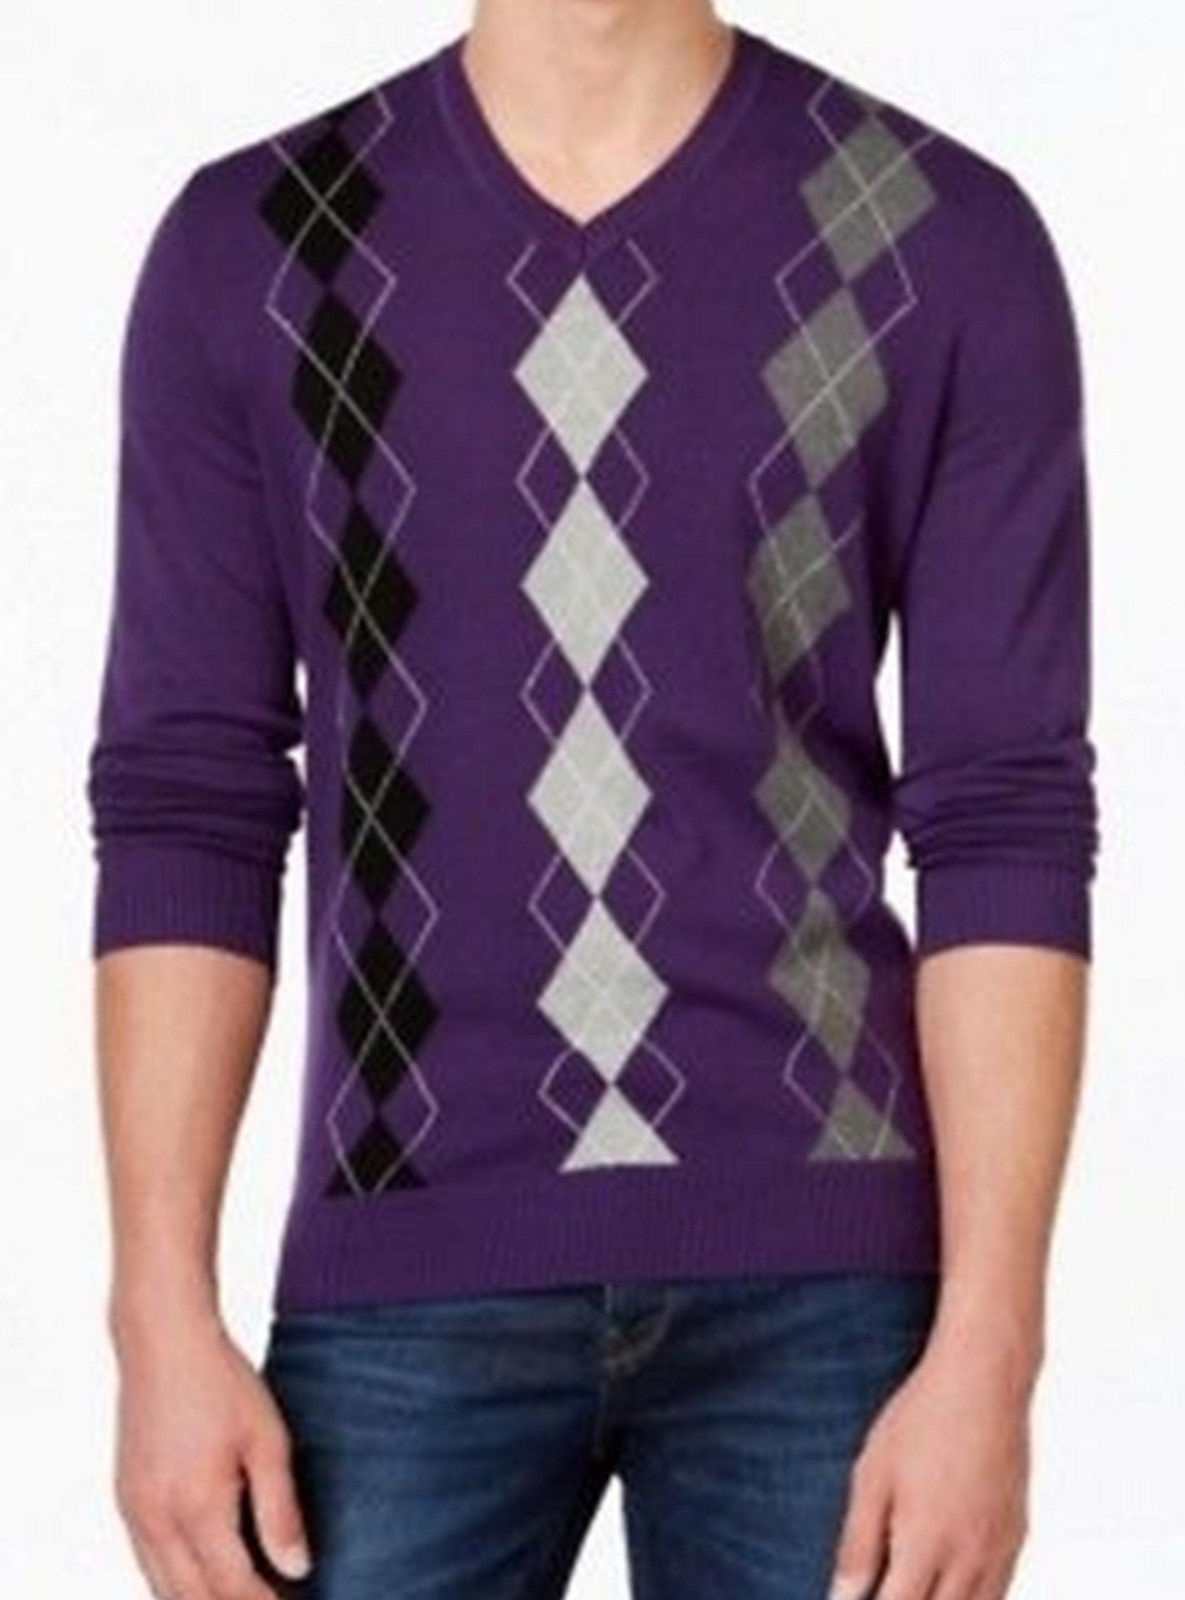 Club Room Men's Purple Argyle Print V-neck Cotton Knit Pullover Sweater